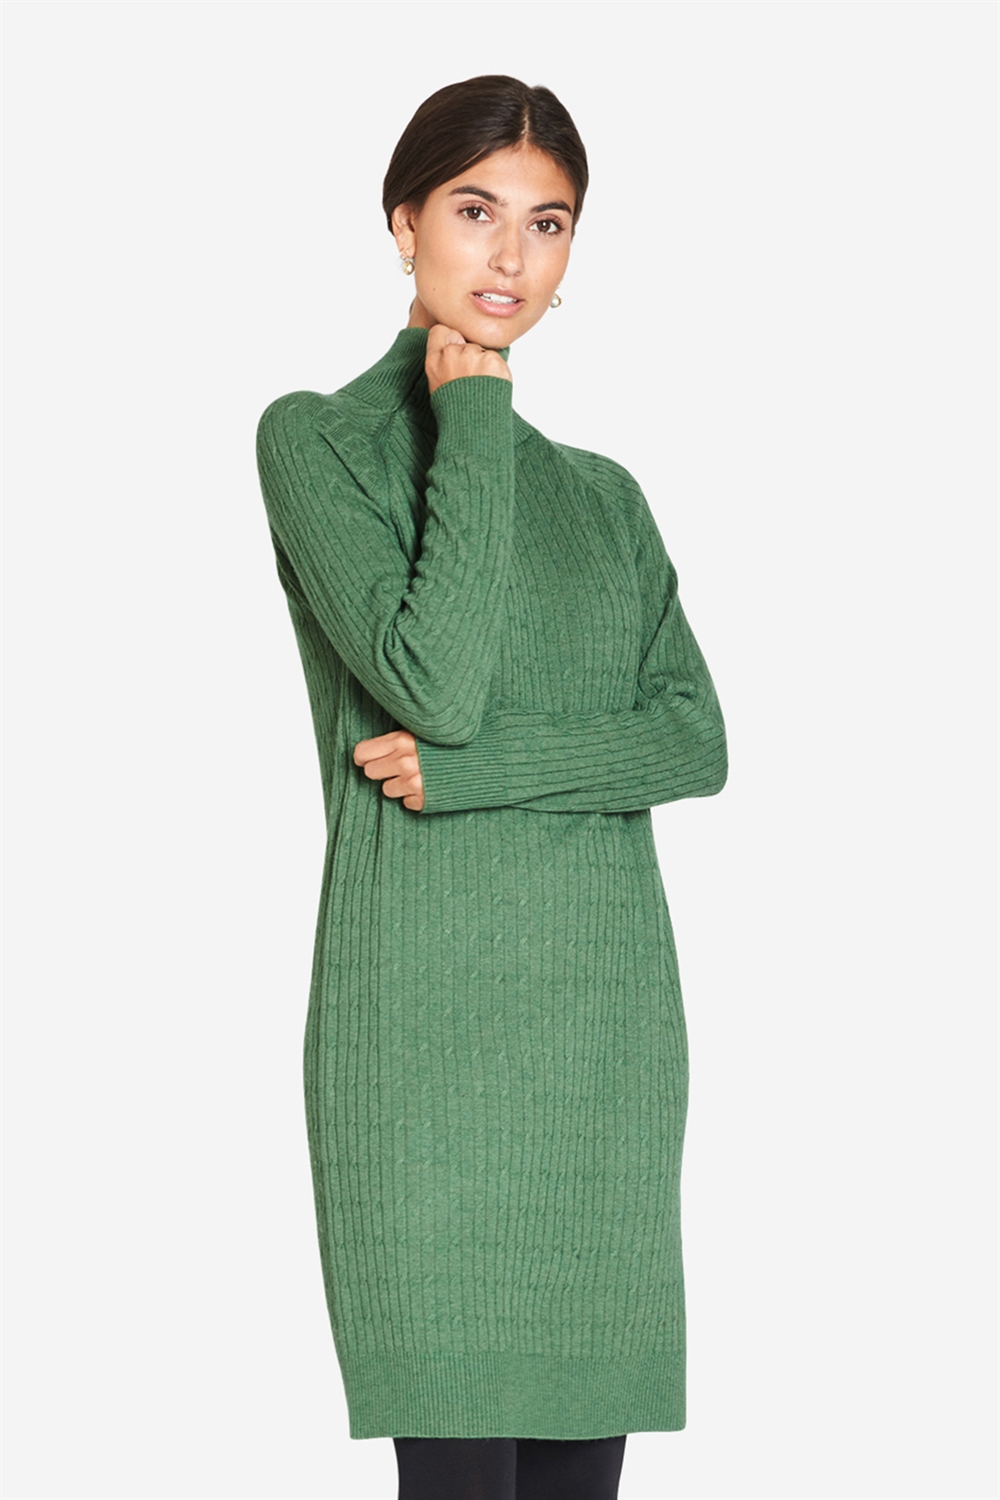 High-necked green nursing dress in cable knit